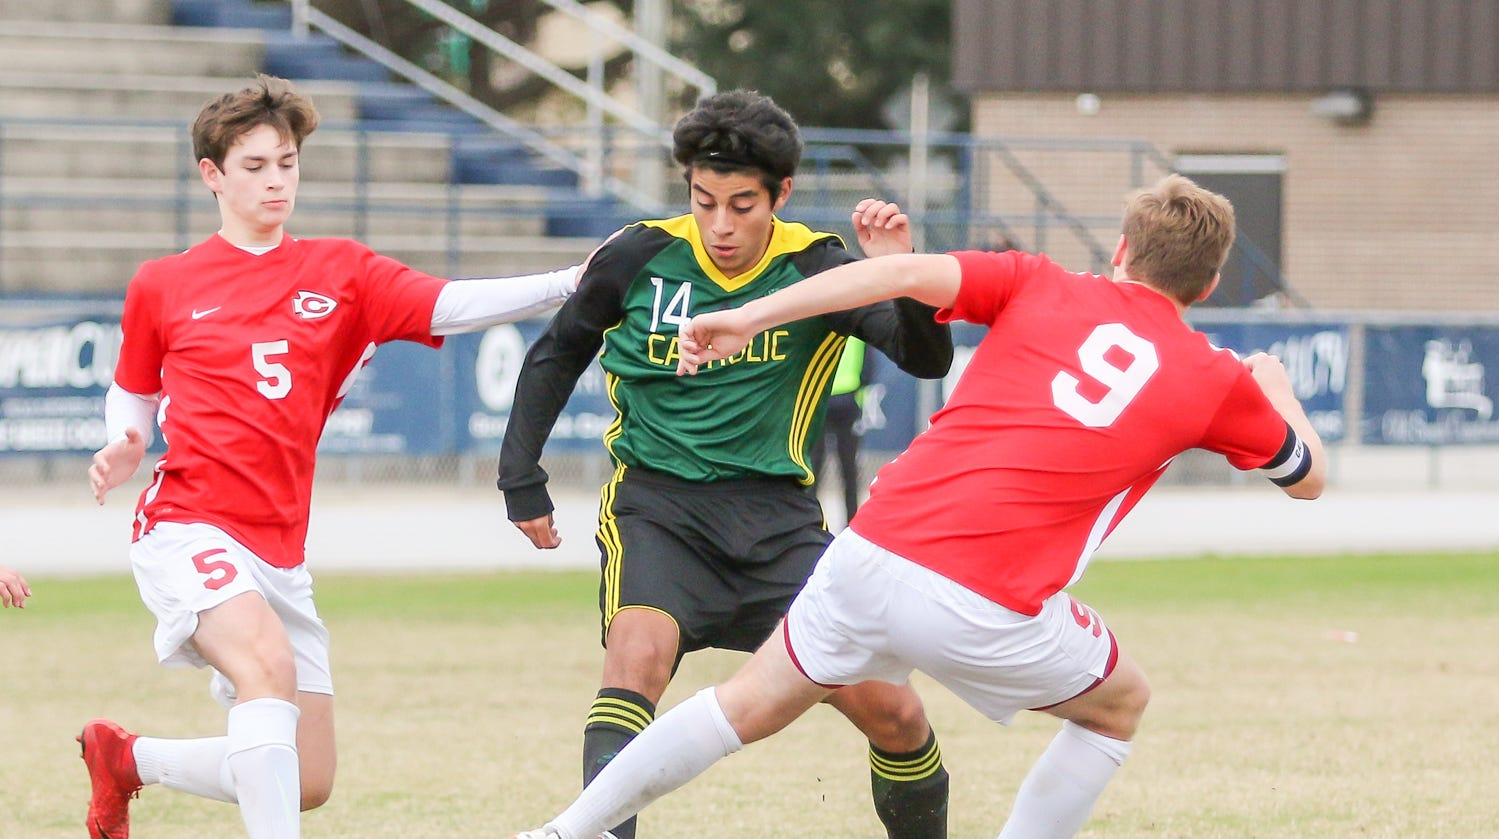 Pensacola Catholic's Mario Cardenas (14) steals the ball from Clinton's Nathan Thomas (9) at Gulf Breeze High School on Saturday, December 15, 2018.